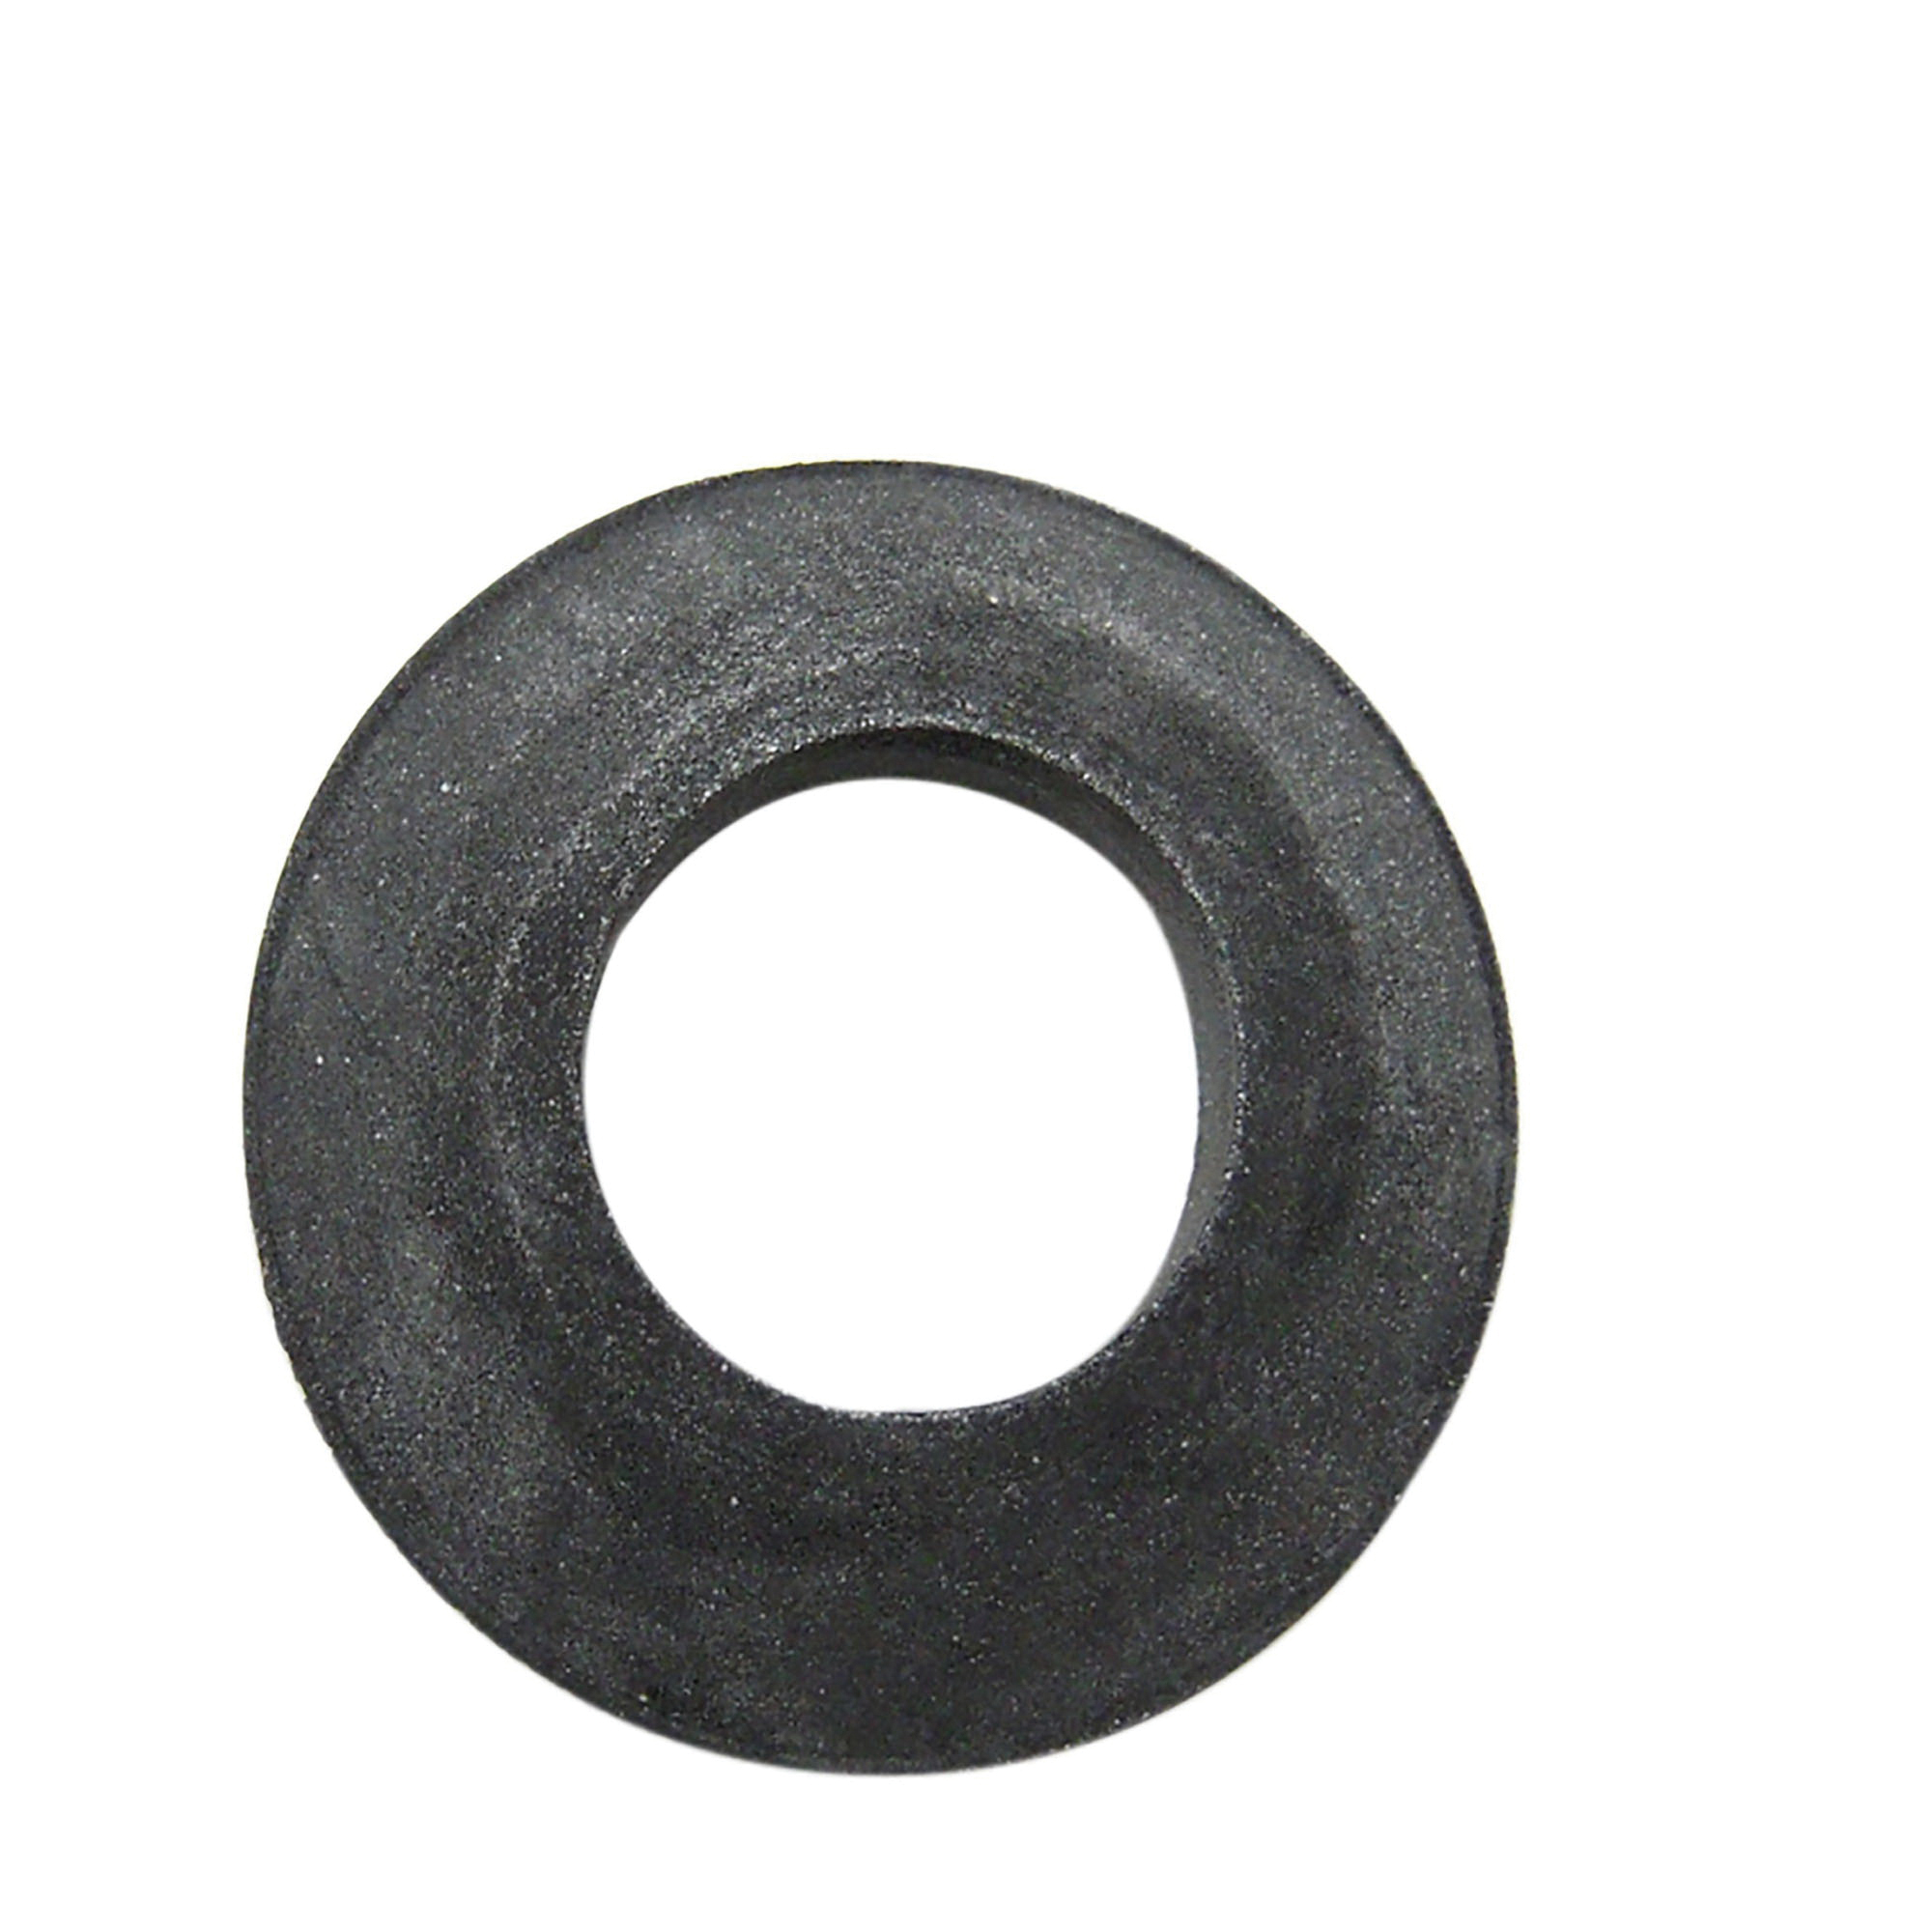 American Standard 047218-0070A Tank-to-Bowl Gasket, Domestic